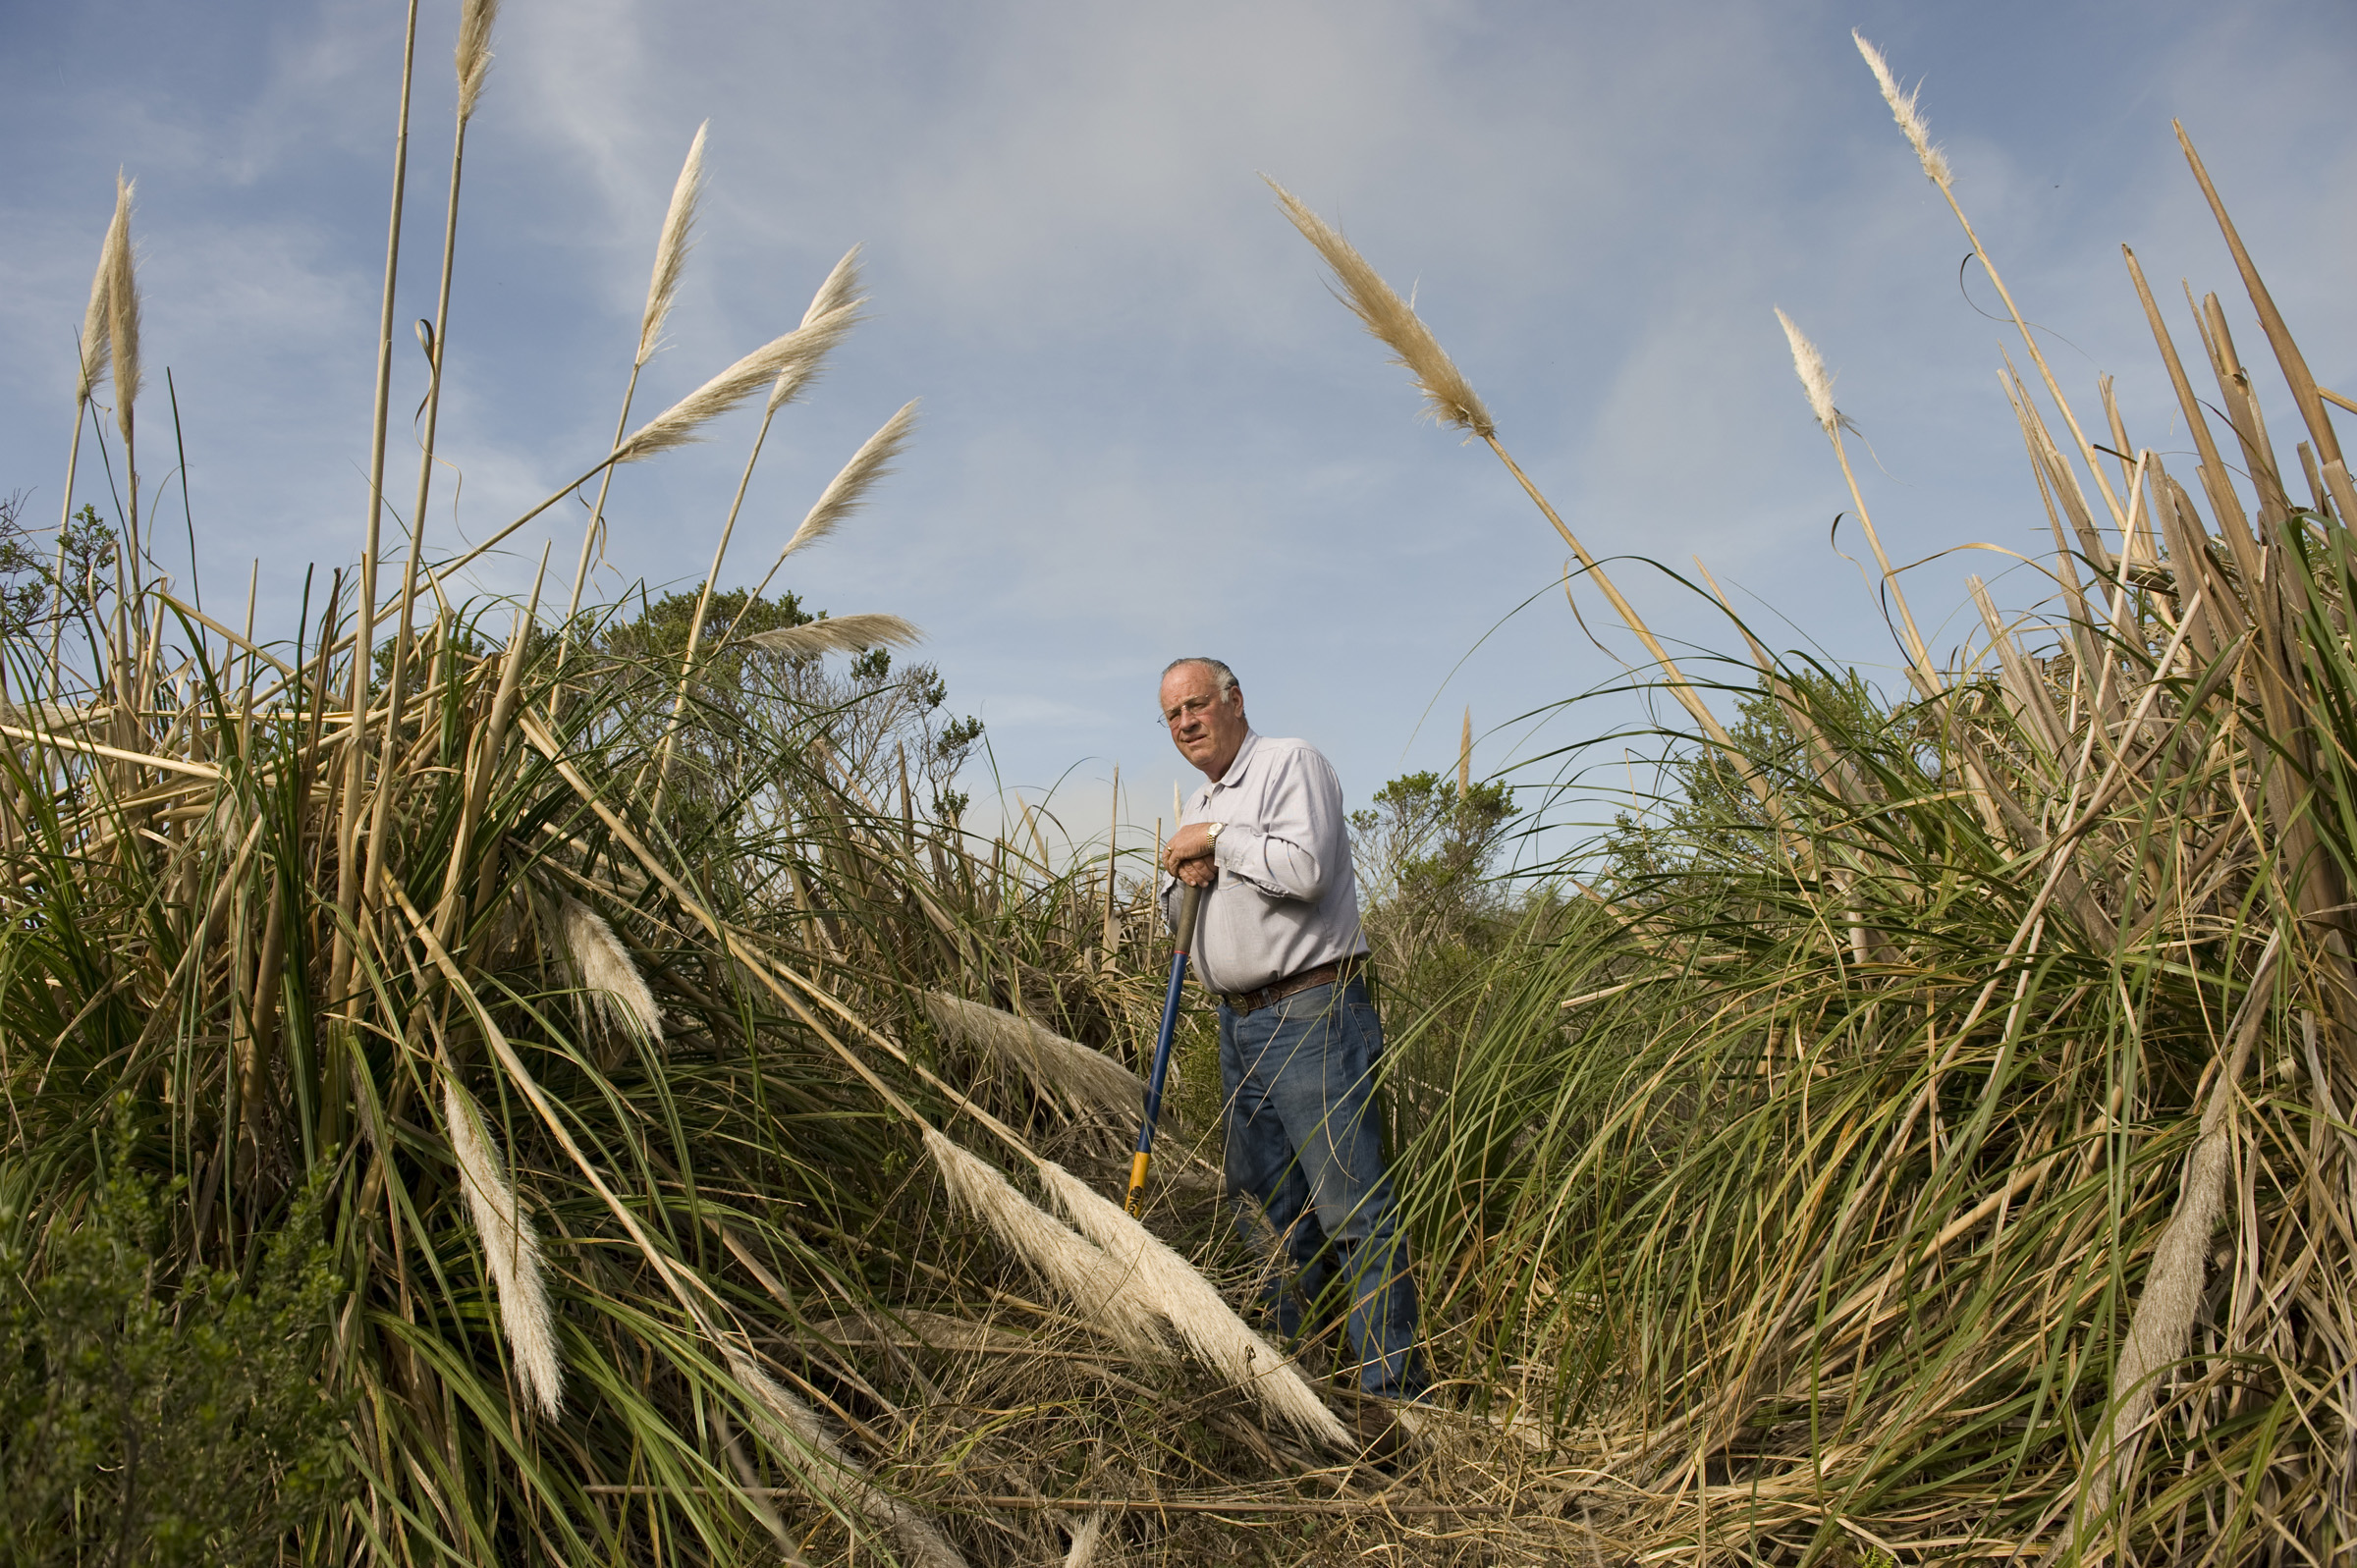 pampas grass (Cortaderia selloana) in San Mateo County with farmer B.J. Burns